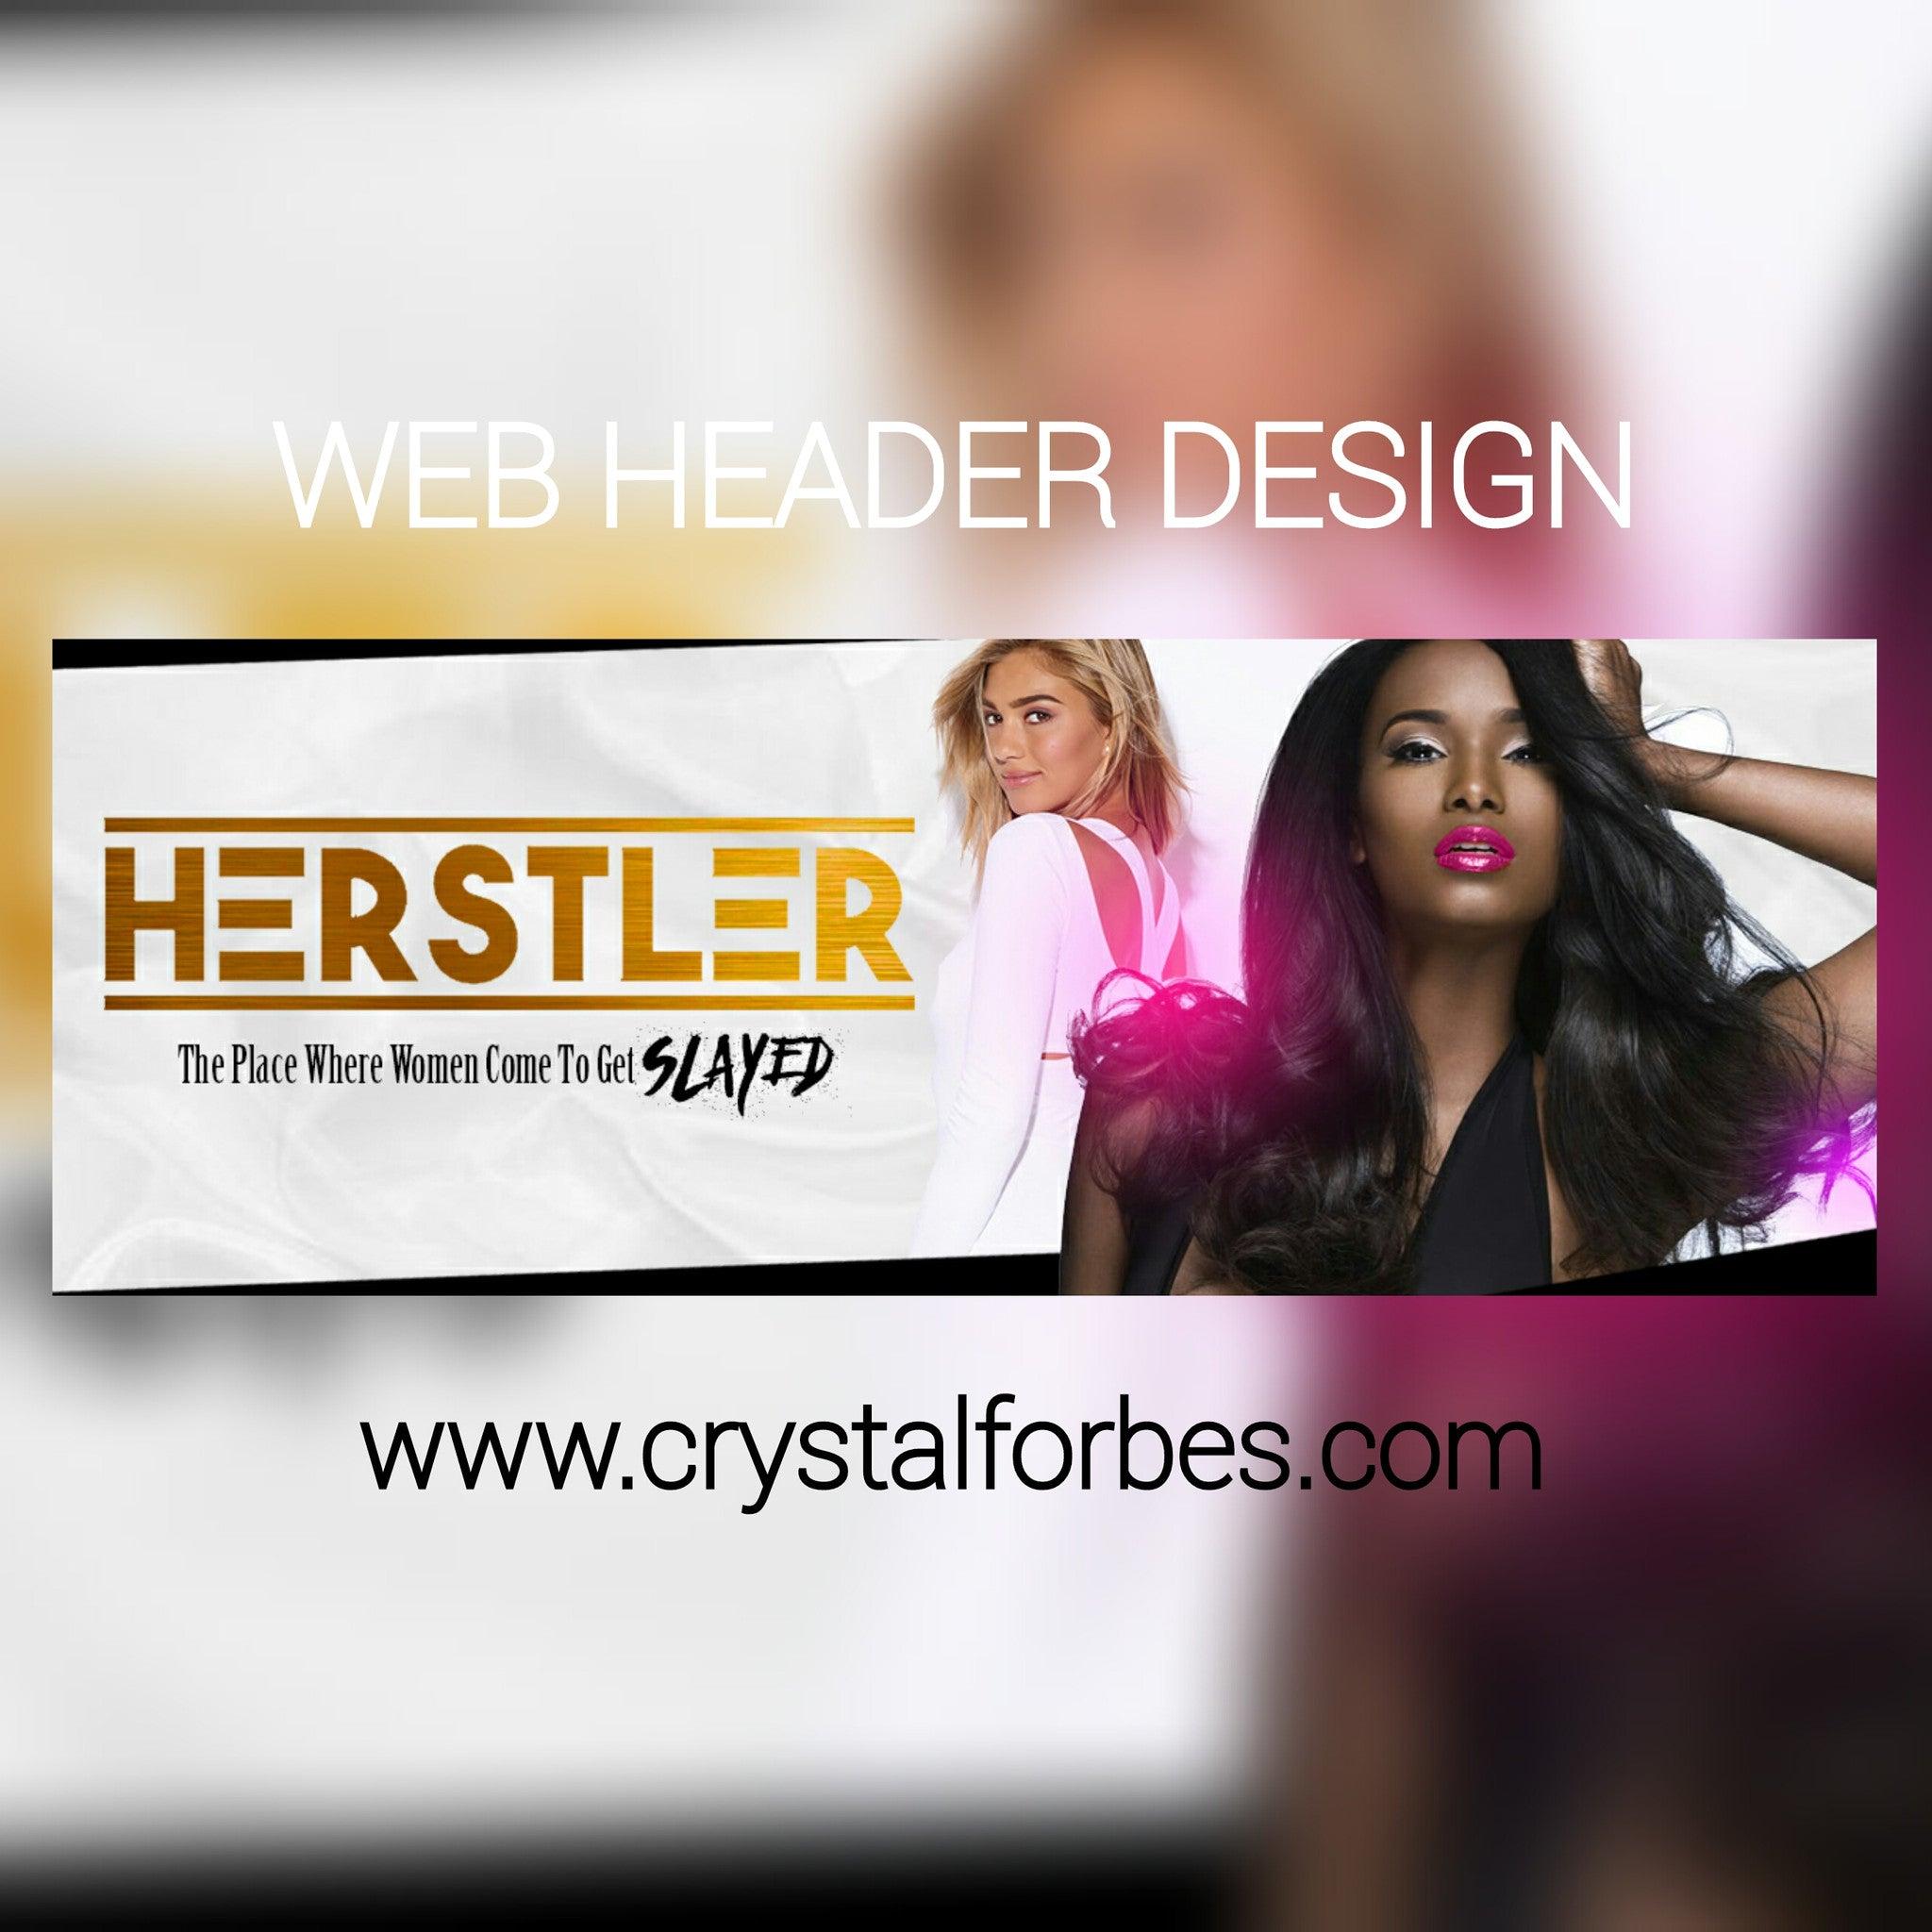 Web Header Design